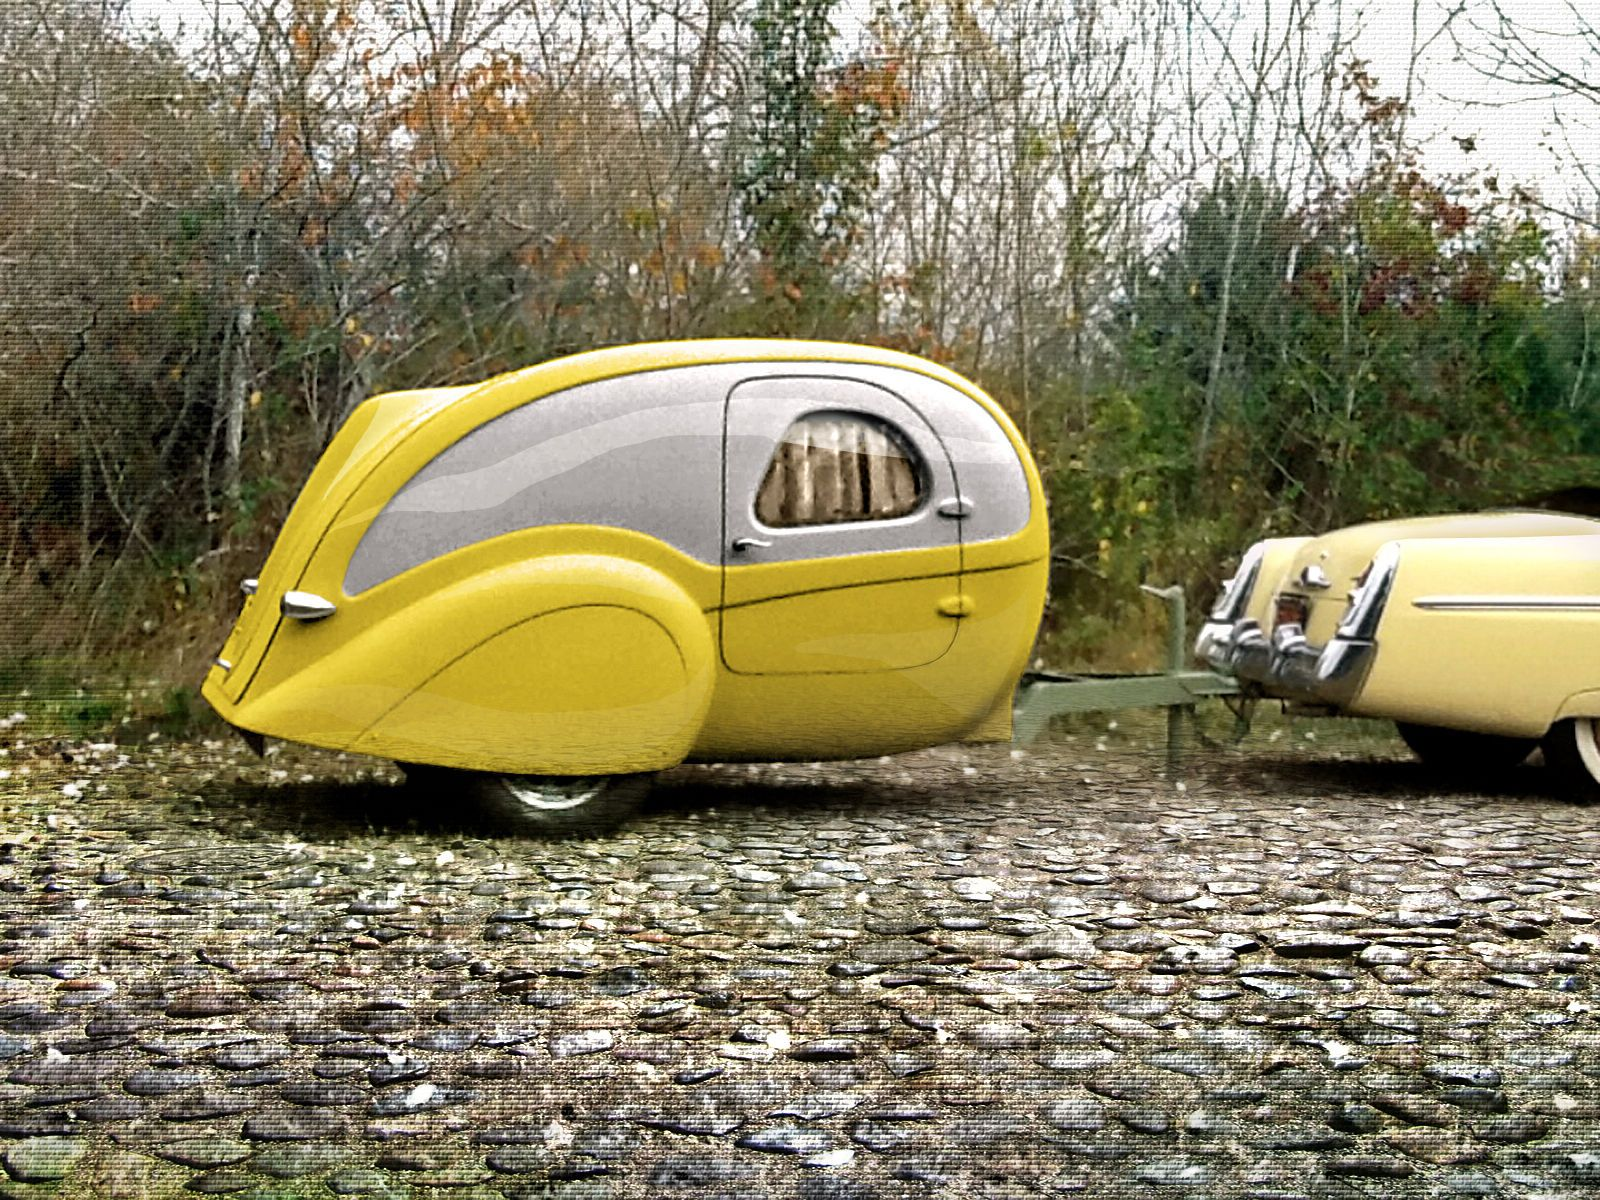 Posted in retro vintage tagged classic cars teardrop caravan vintage - Aerolux Teardrop Trailer 1940 S Styled Diy Kit Tow Behind 1946 Ford Rat Hot Rod